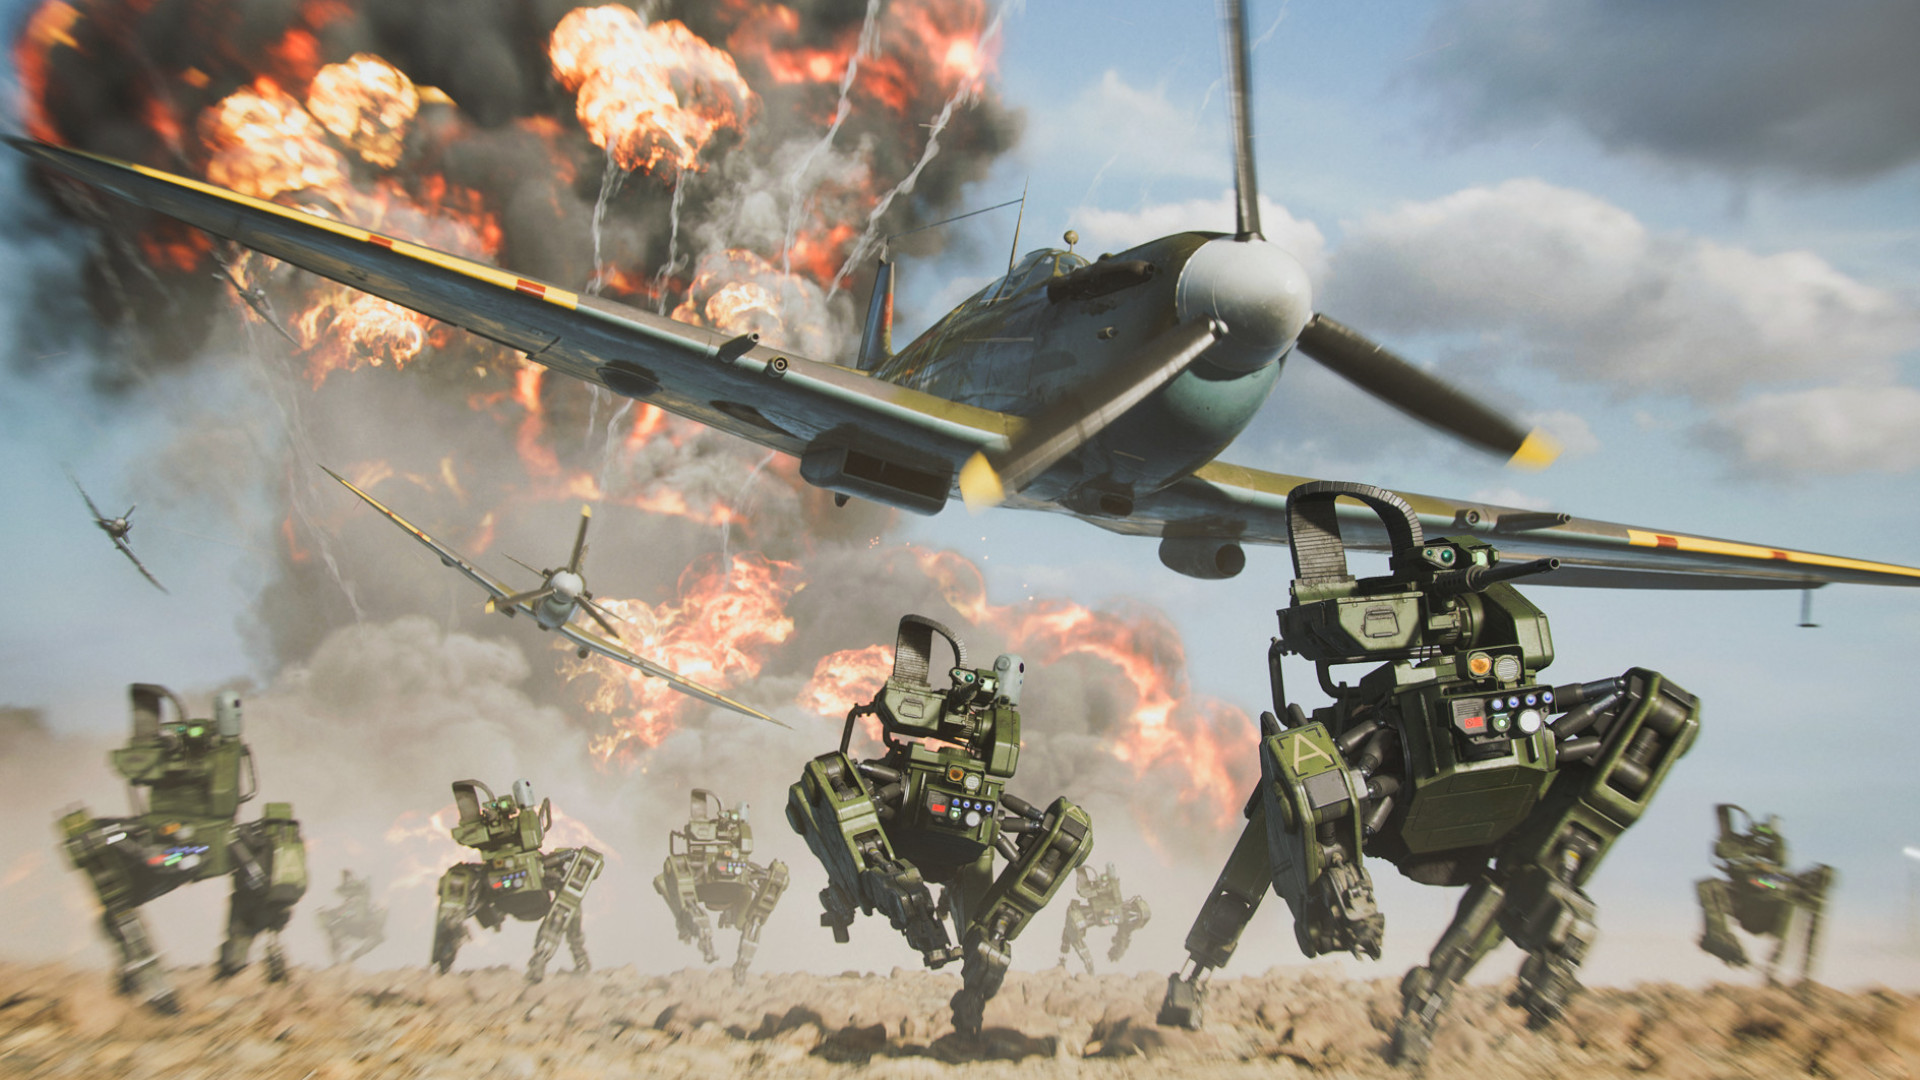 Battlefield 2042 is delayed – details on the open beta are coming this month